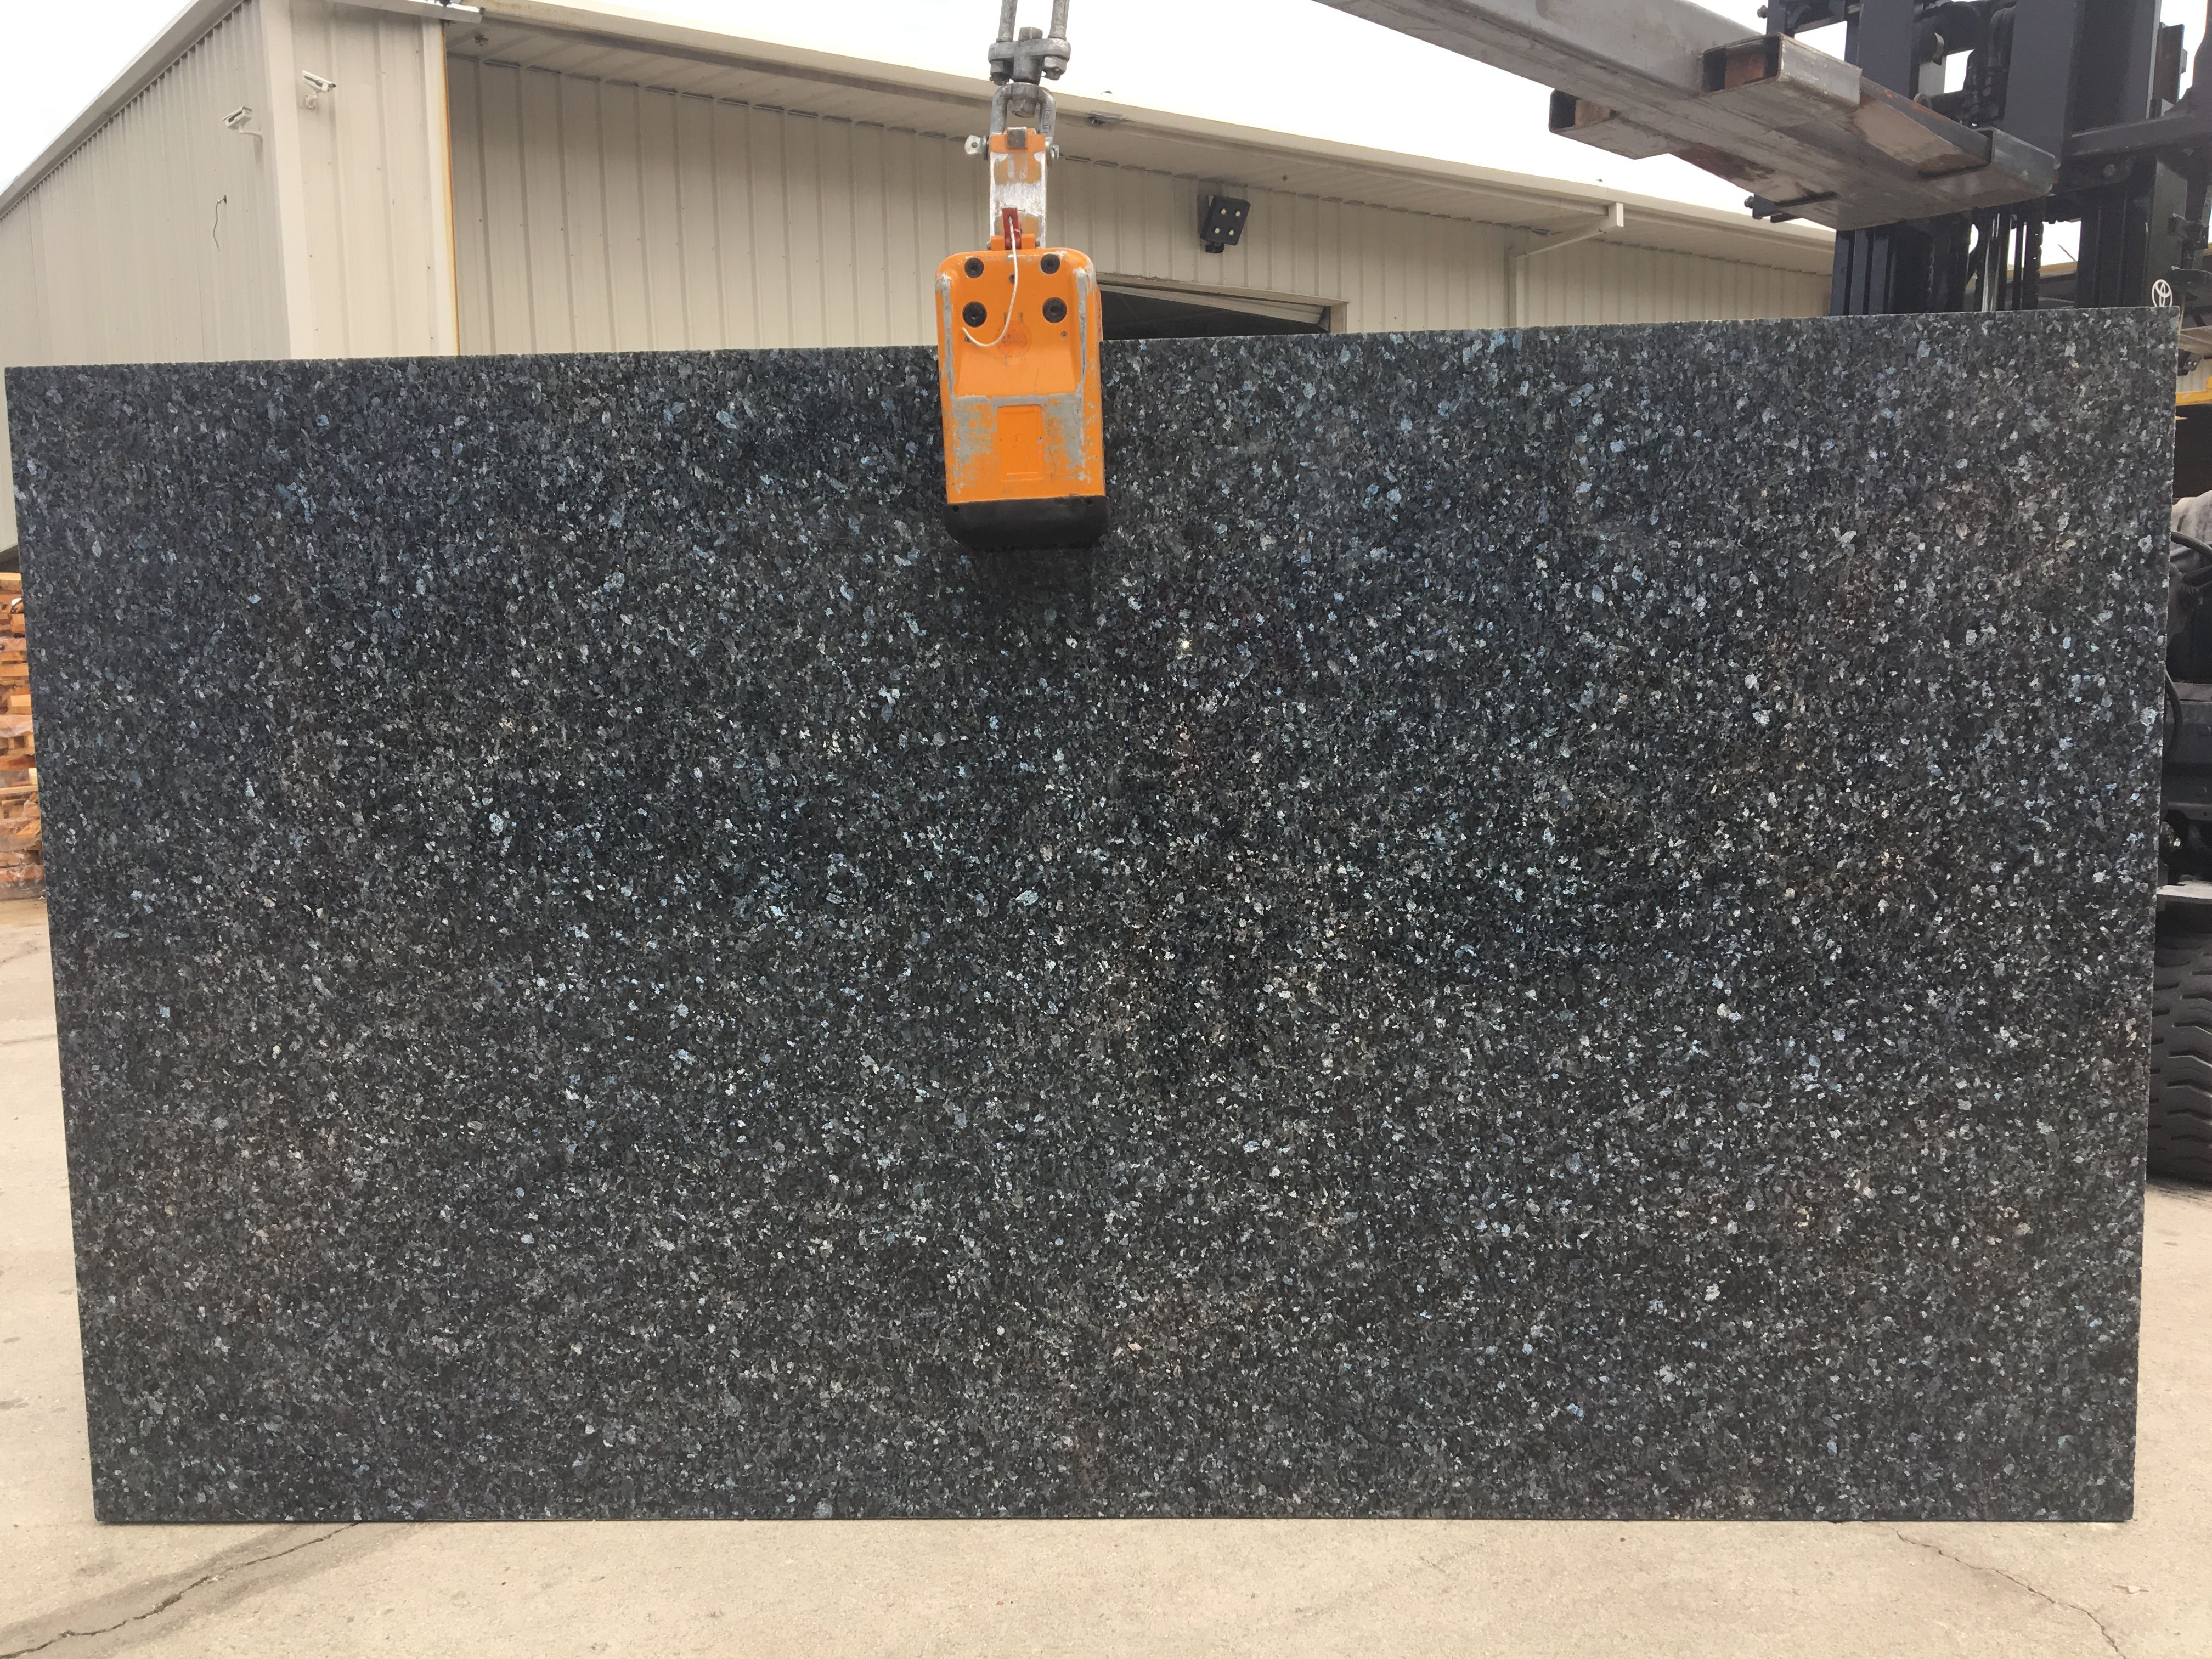 Blue Pearl Gt Blue Pearl Gt Granite Is From Norway Features Shades Of Grays Royal Navy Blue And Beige This D Backsplash Granite Countertops Granite